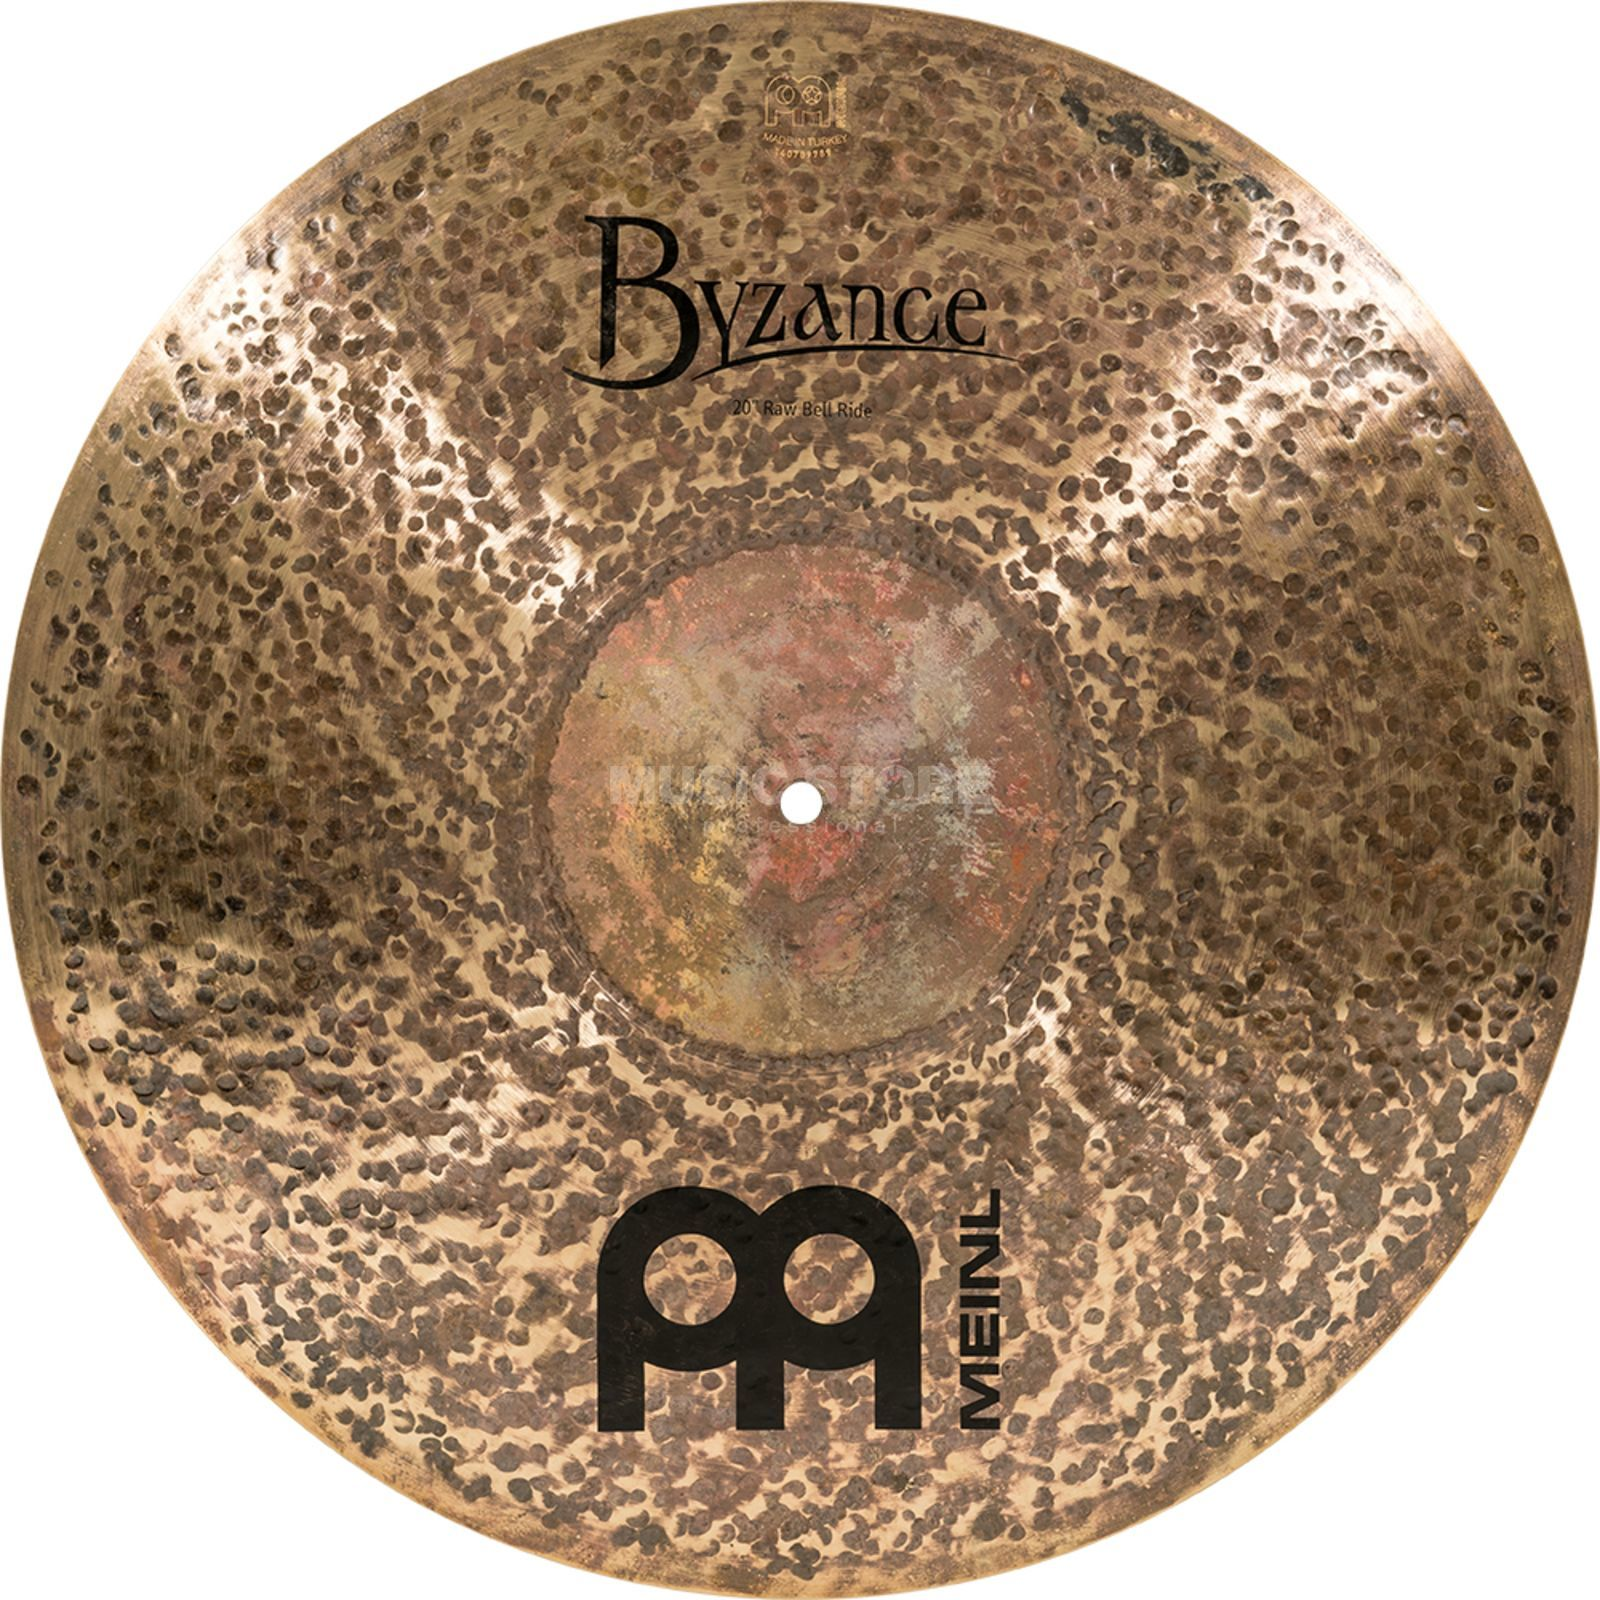 "Meinl Byzance Raw Bell Ride 20"", B20RBR, Dark Finish Zdjęcie produktu"